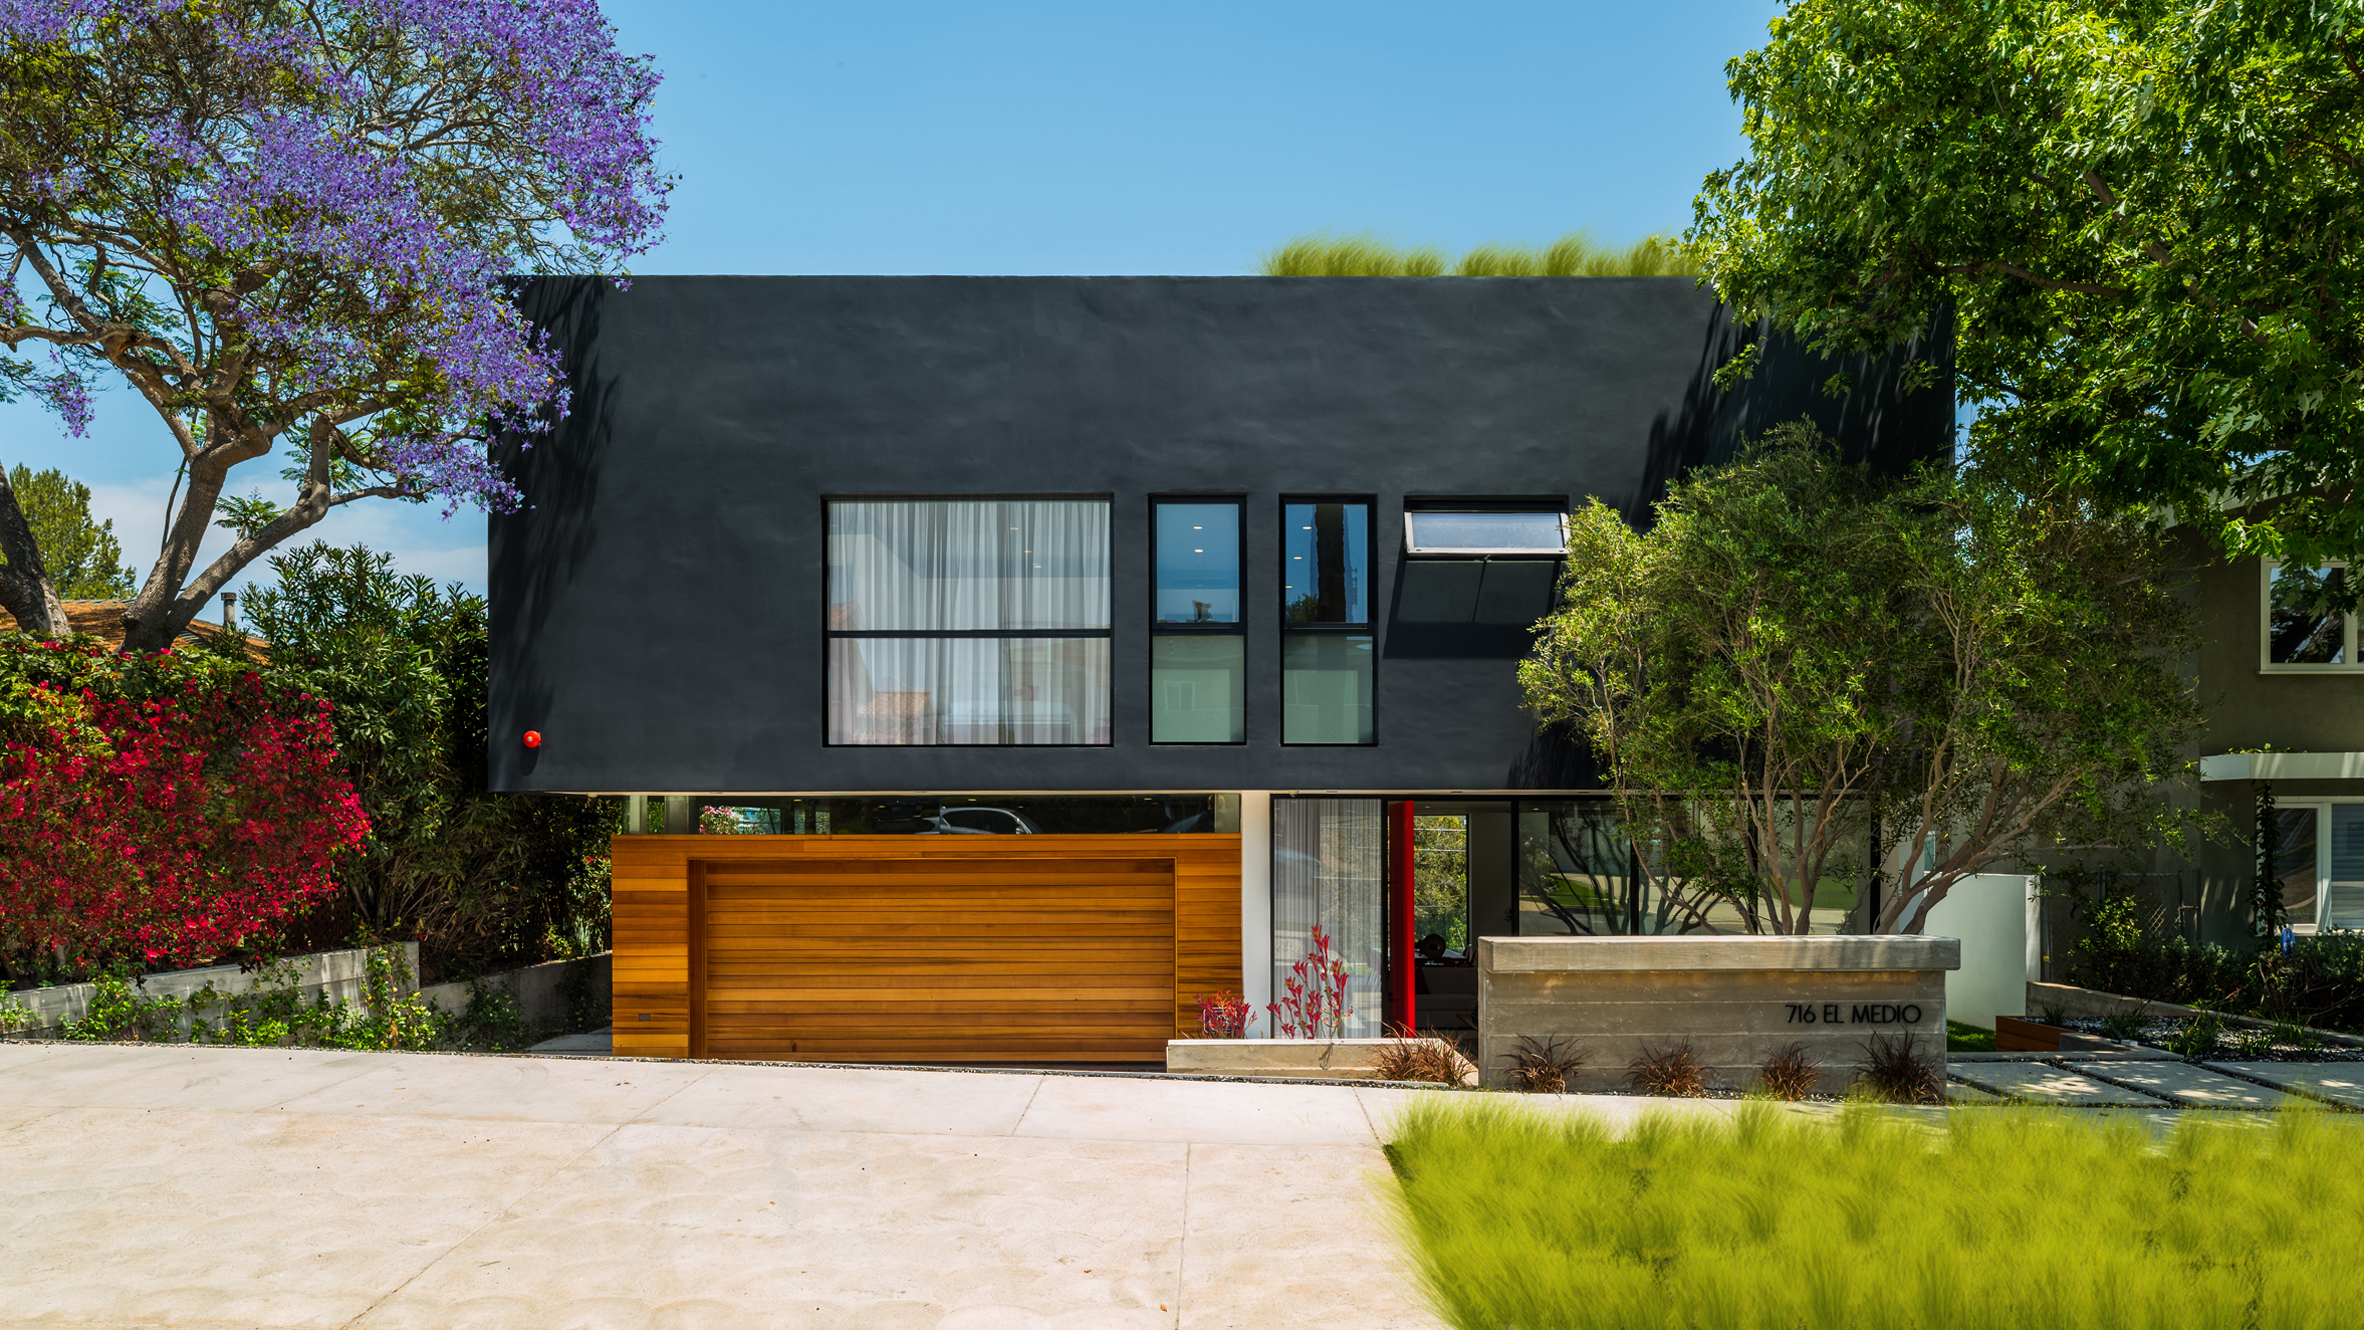 Coastal California home by Hu Mn Lab+ can accommodate 200 party guests